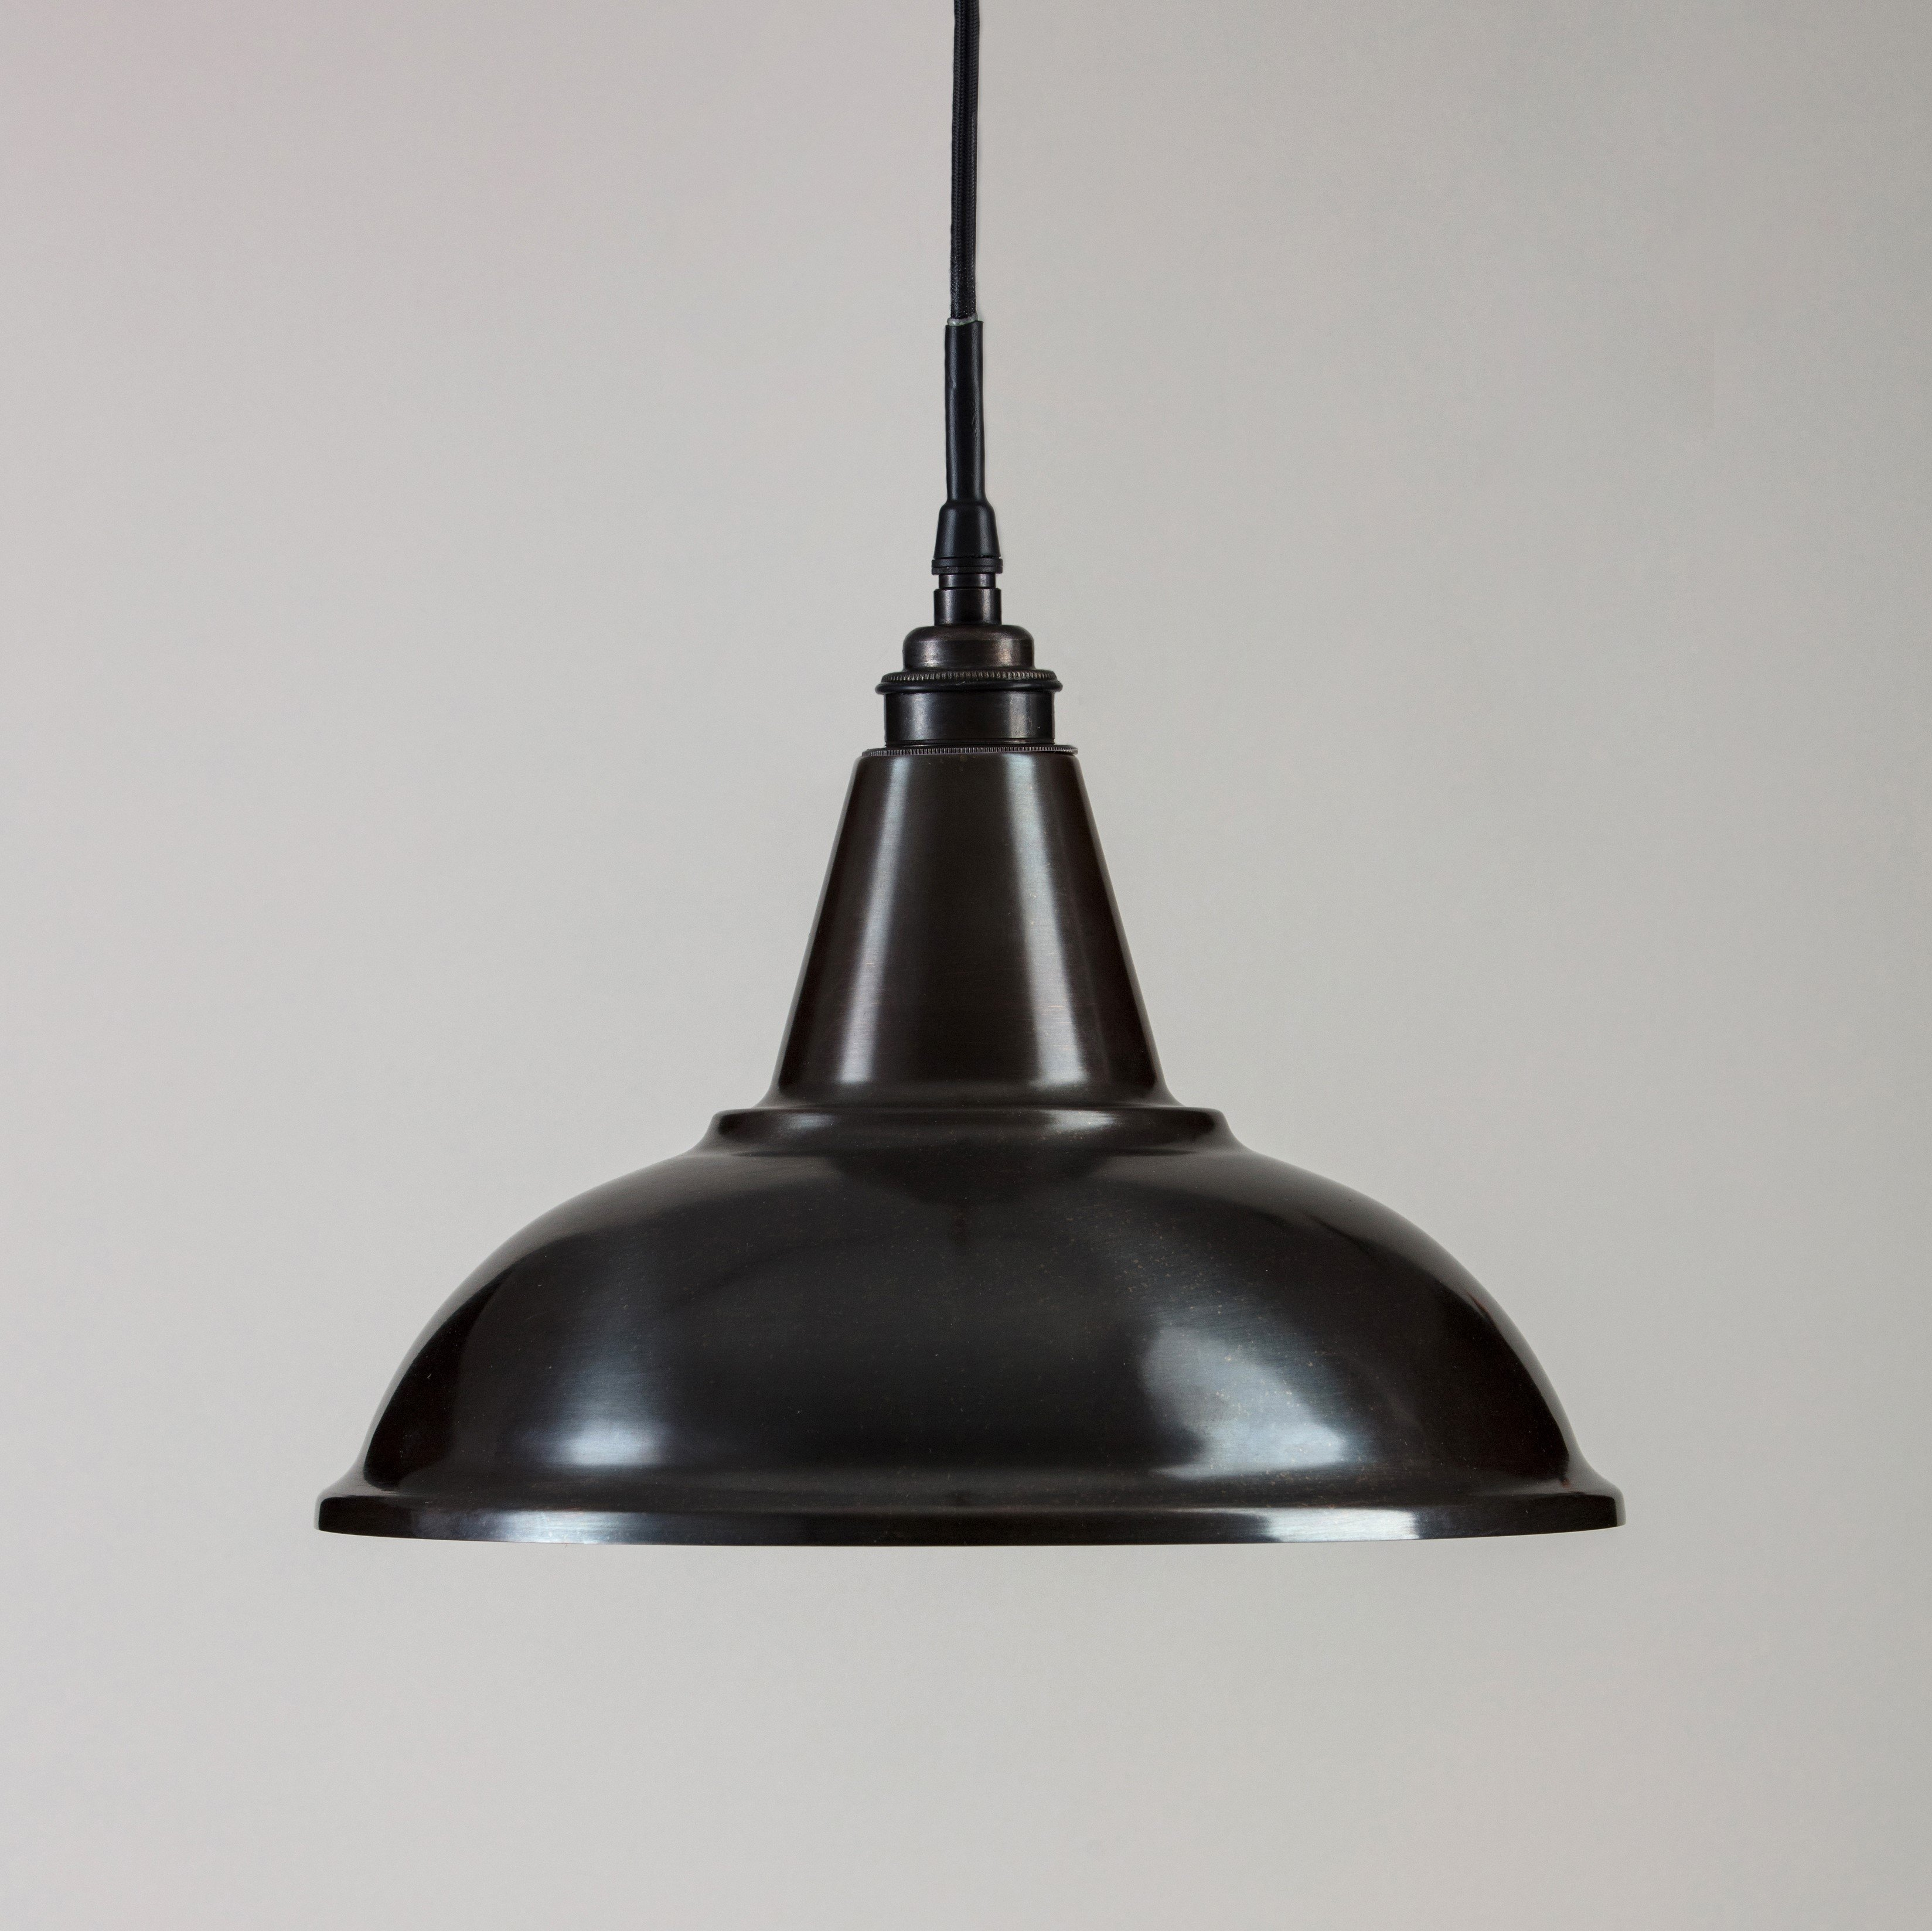 Factory Pendant Light - Raw Steel & Copper IP44